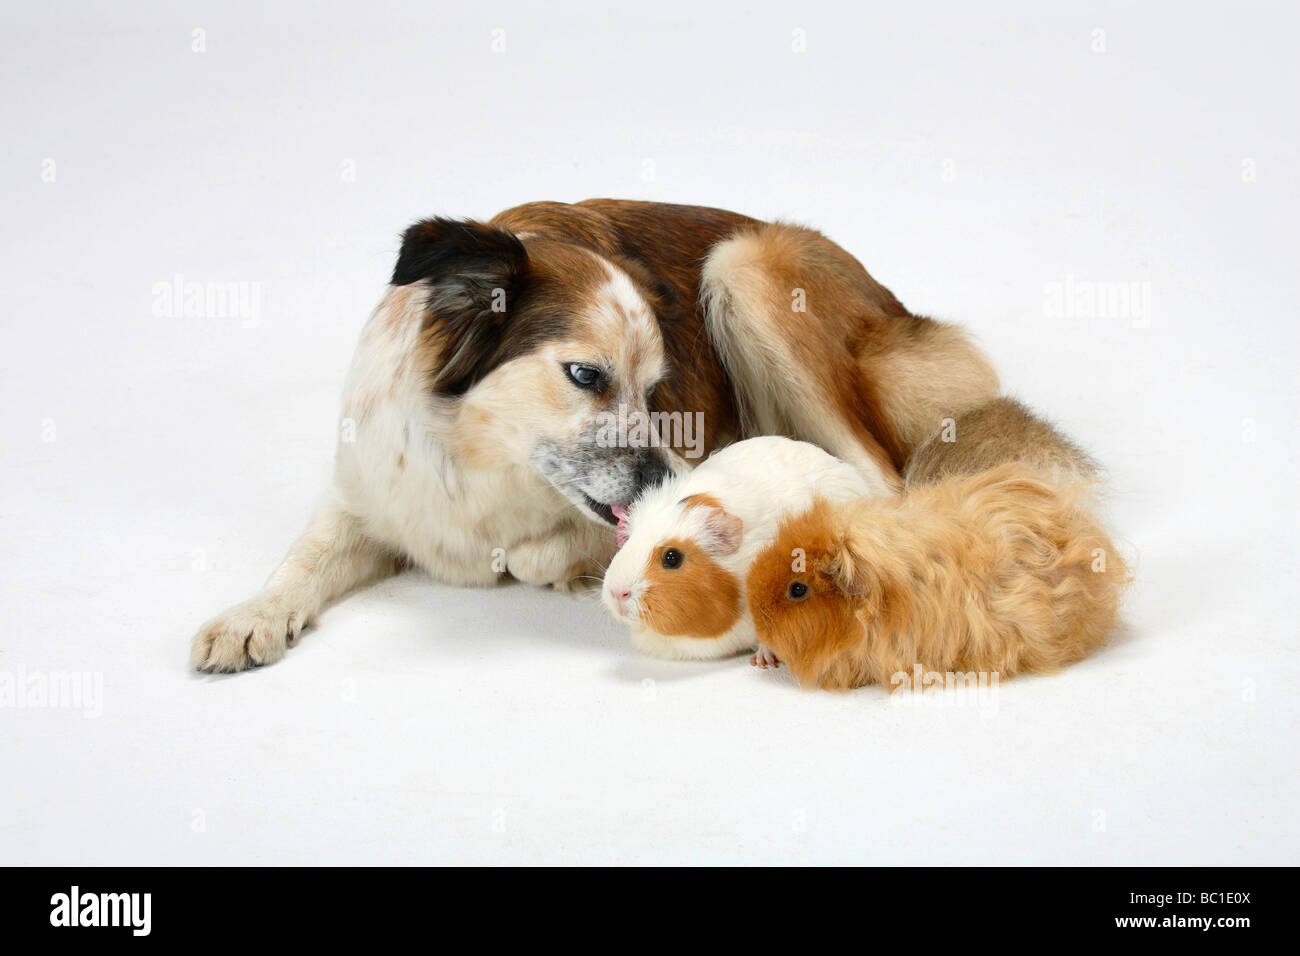 Mixed Breed Dog crossbred Border Collie with Guinea Pigs - Stock Image